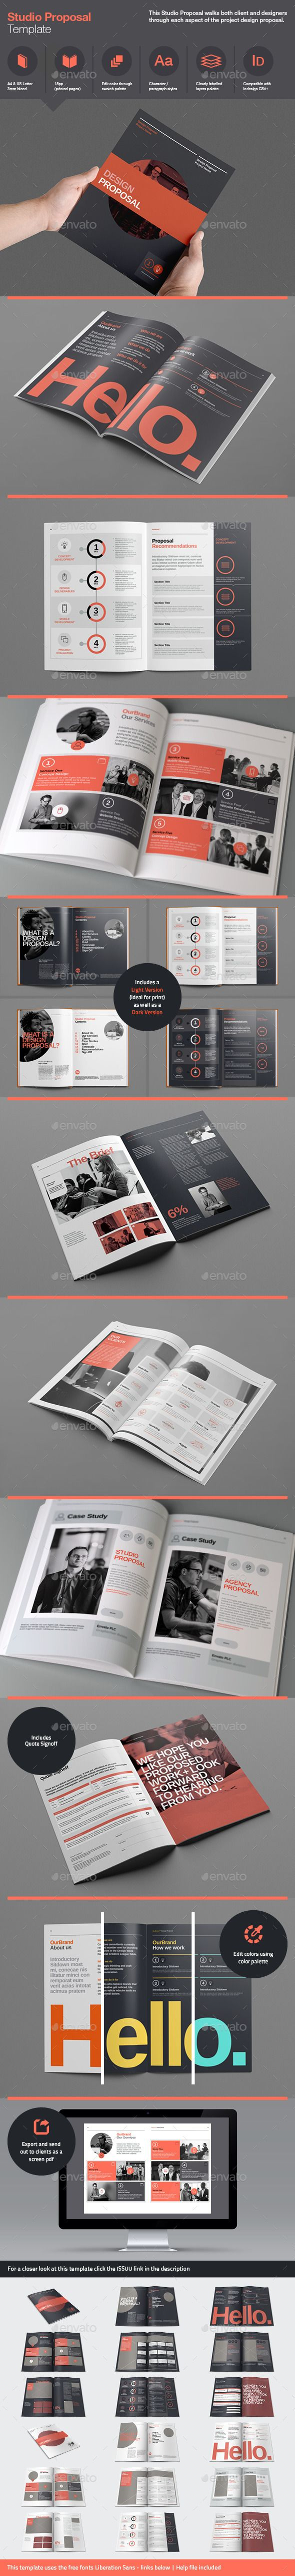 Studio Proposal Template, editorial design by RW Design Studio, via GraphicRiver.